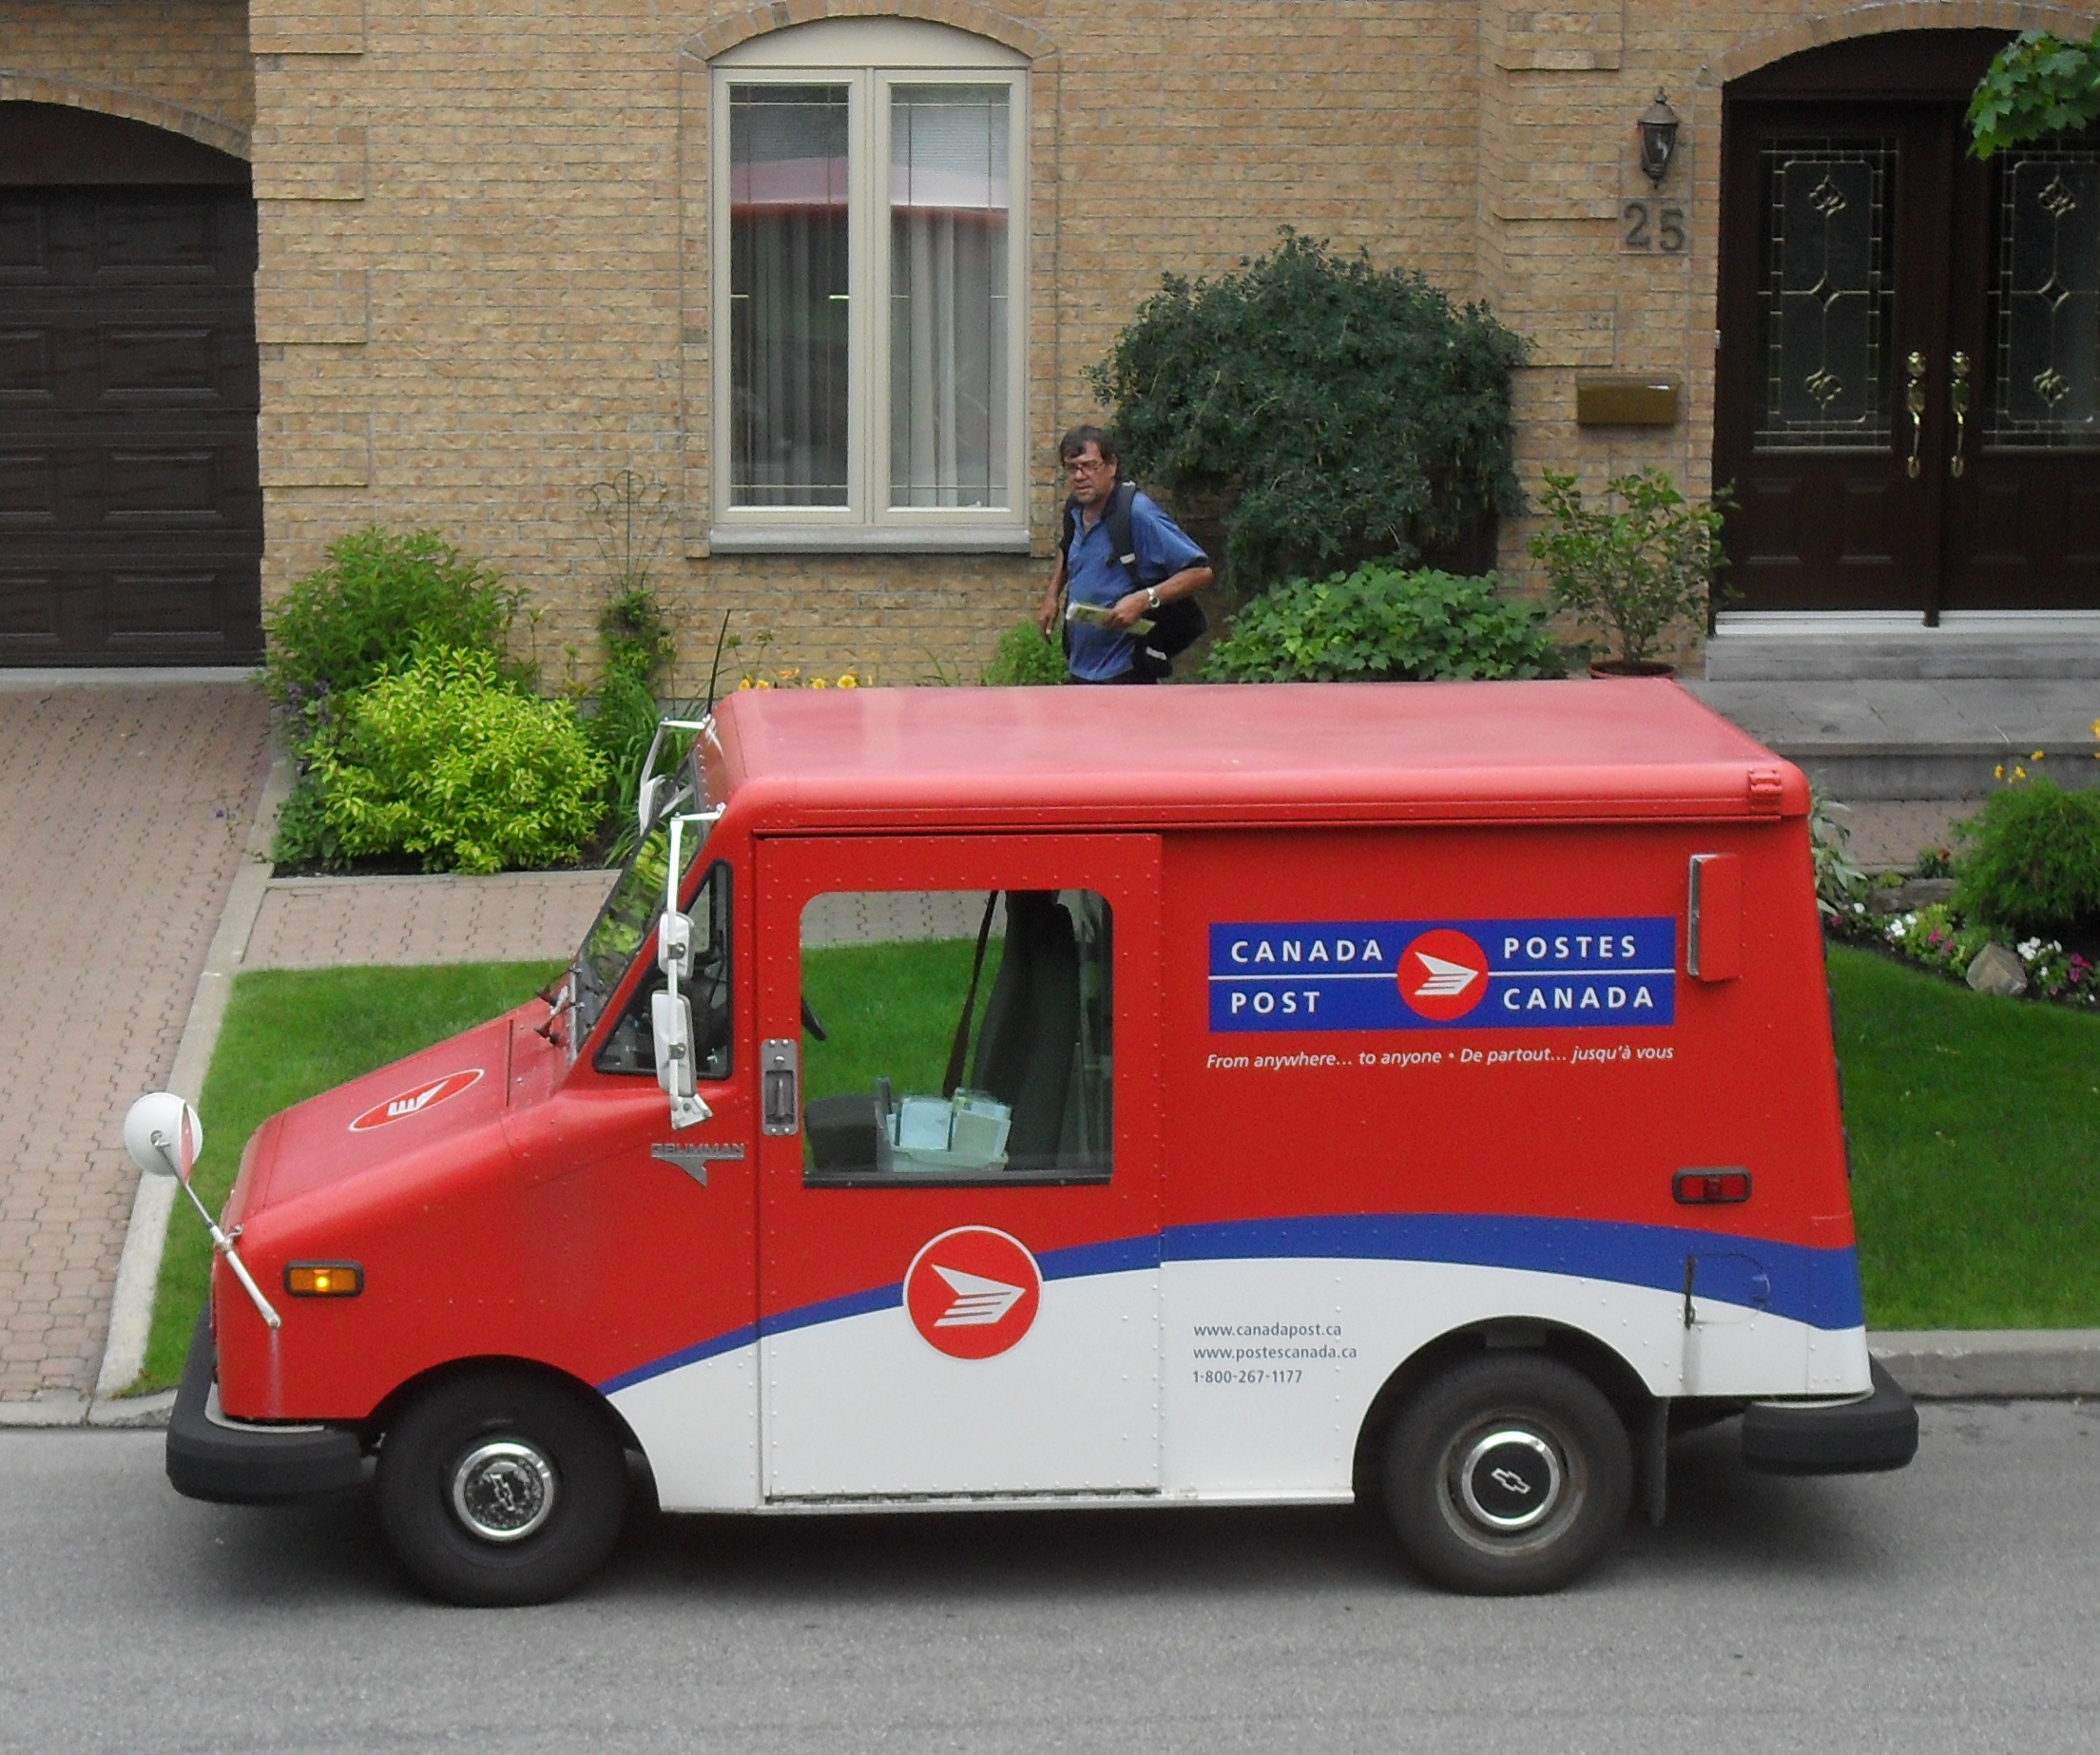 Canada Post Threatens Friday Work Stoppage for Mail Carriers